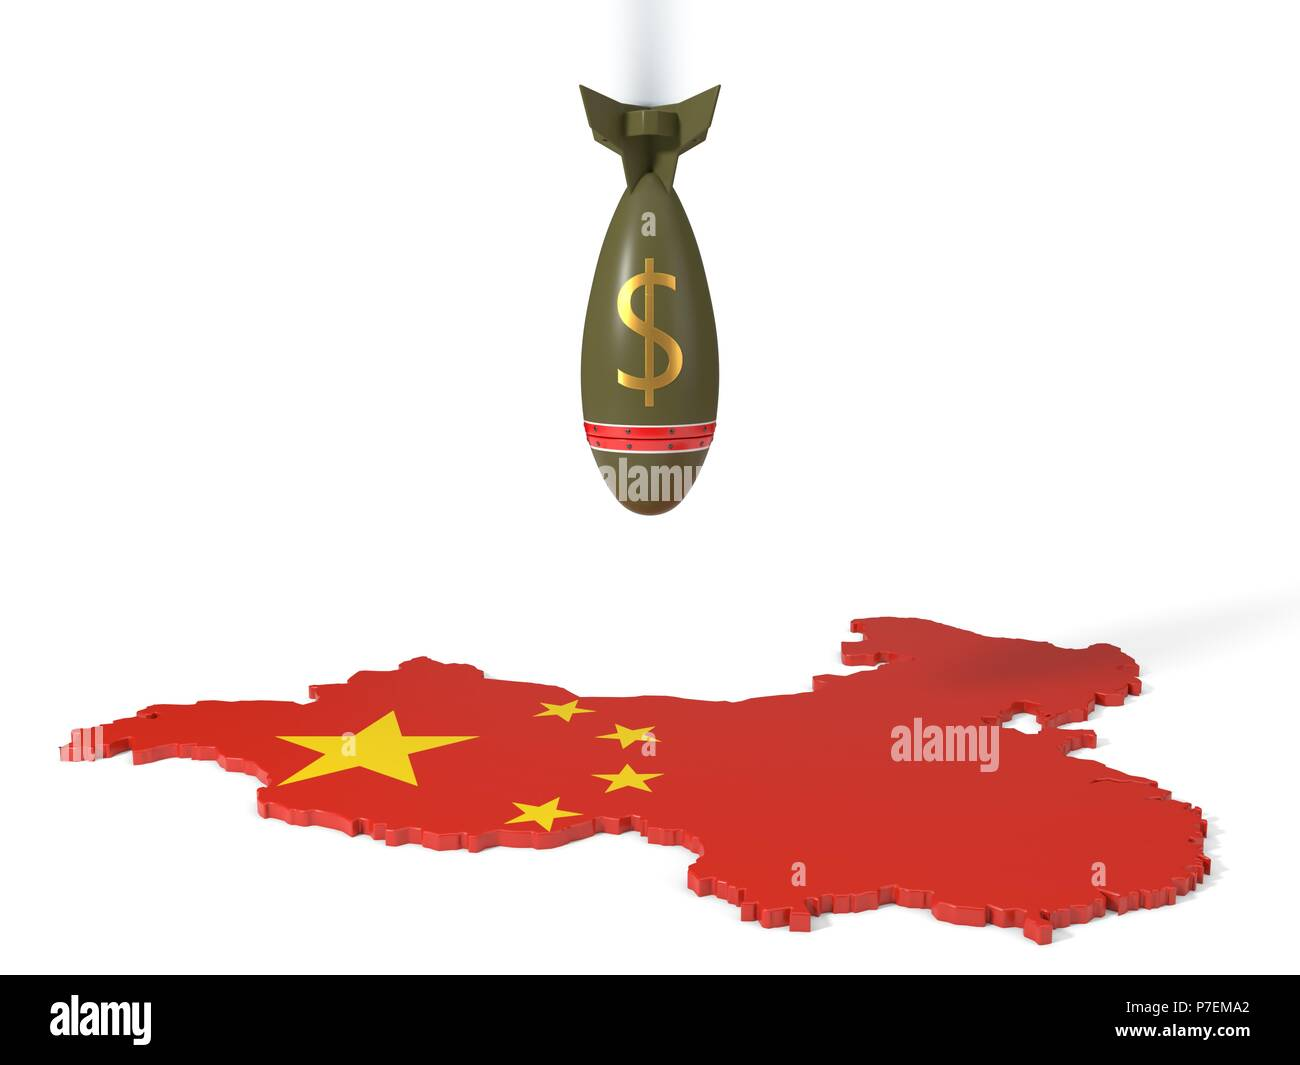 economy and trade wars concept with dollar currency bomb and china country map. 3d illustration - Stock Image